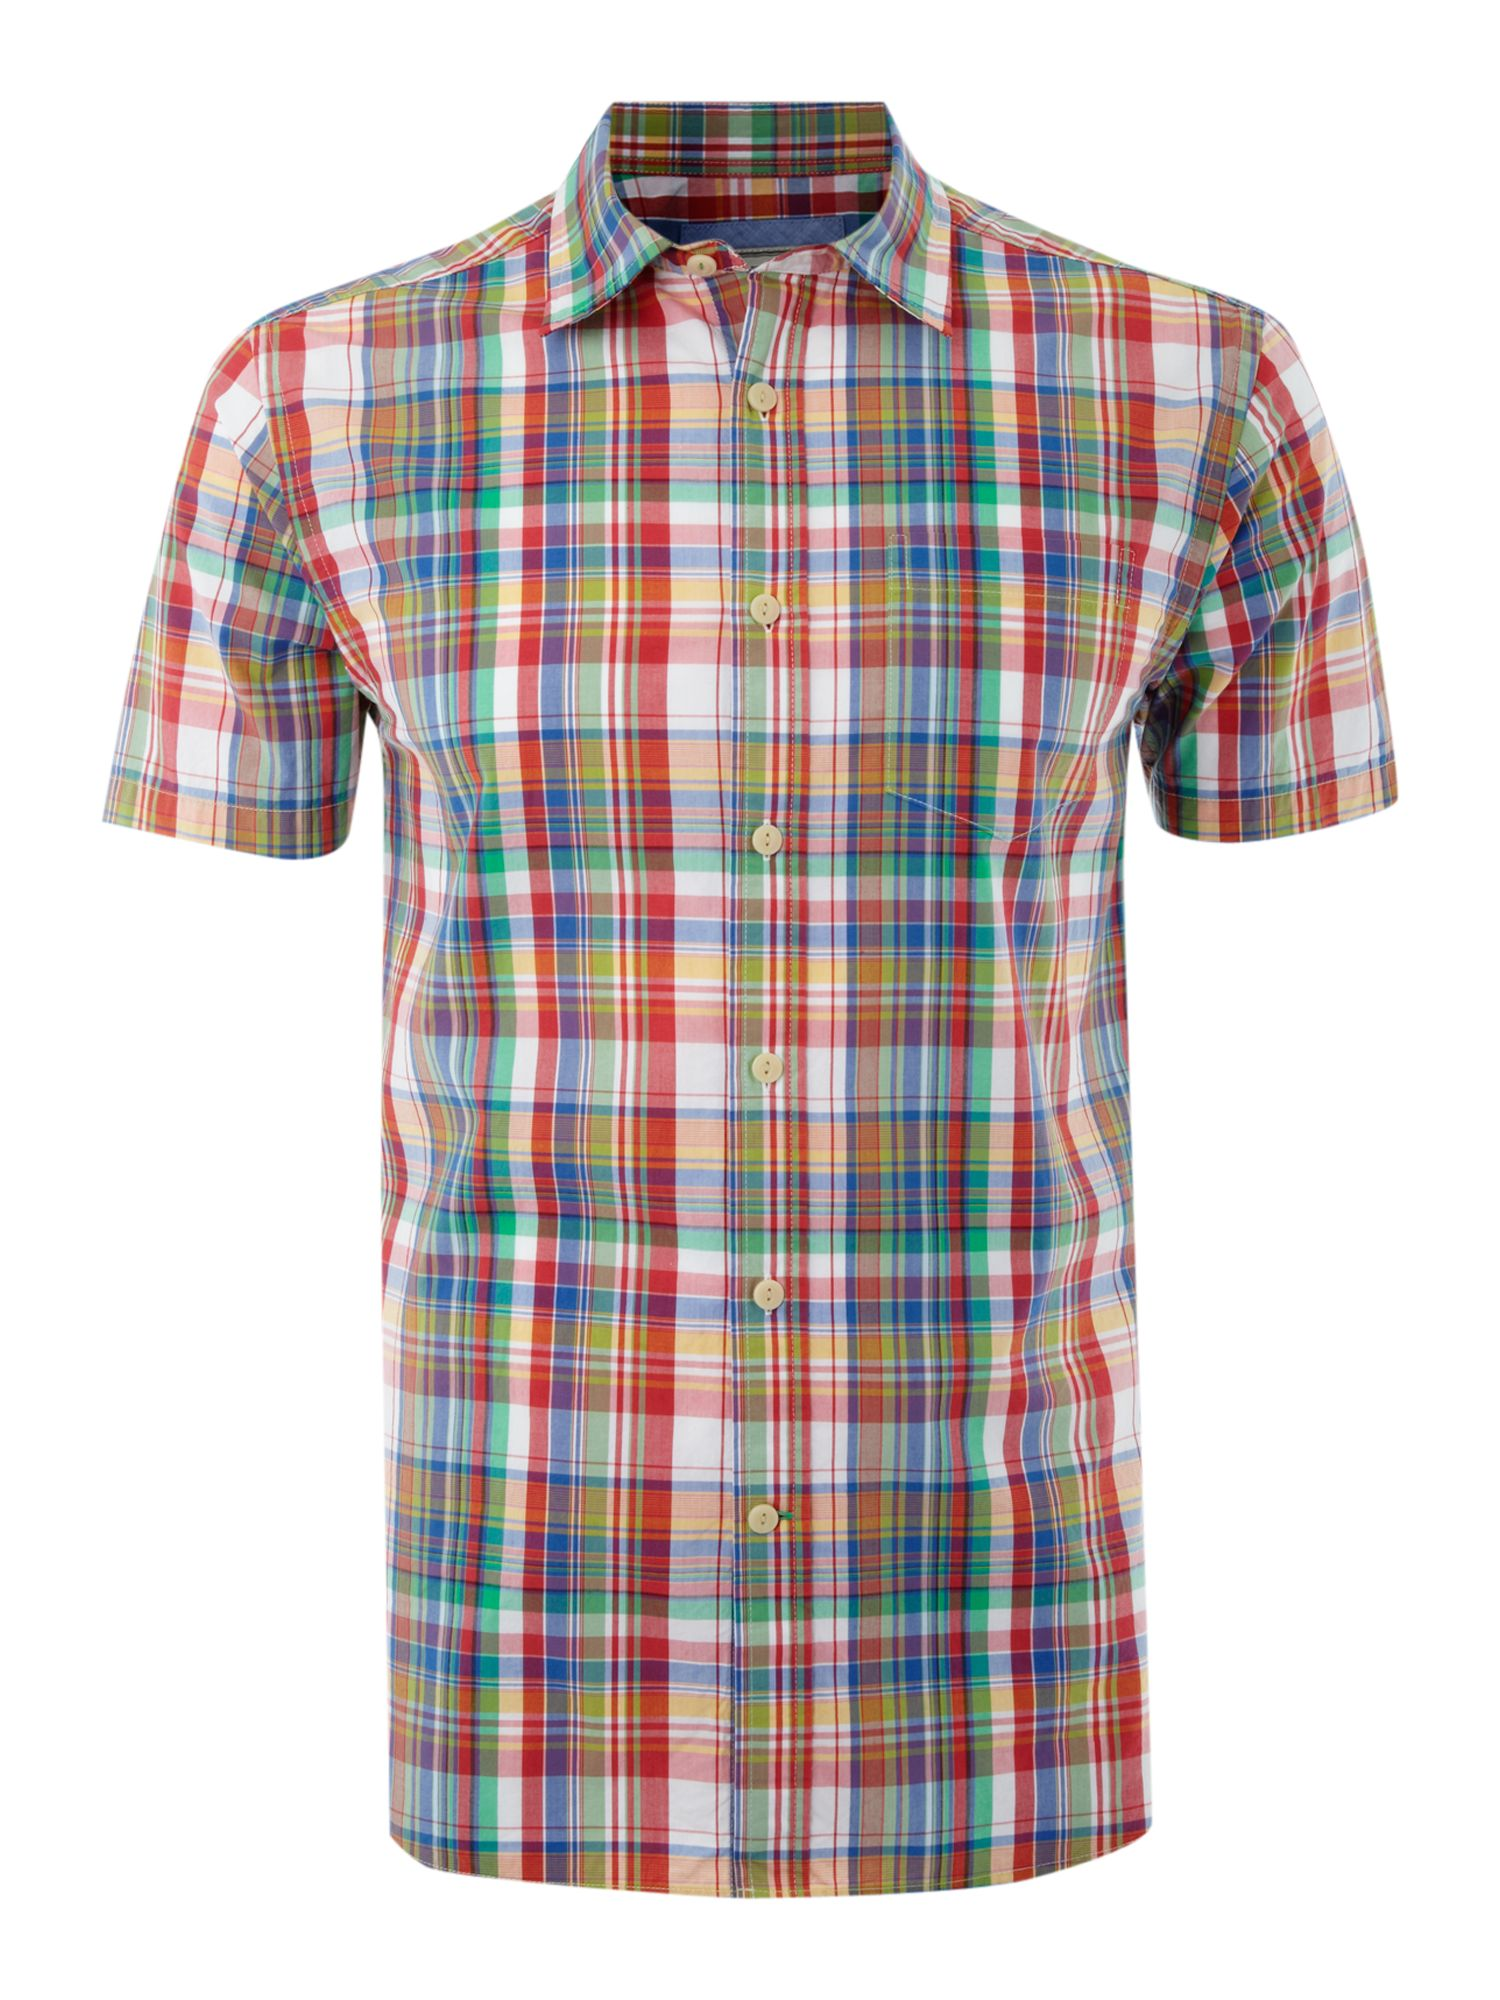 Wimbledon Check Shirt